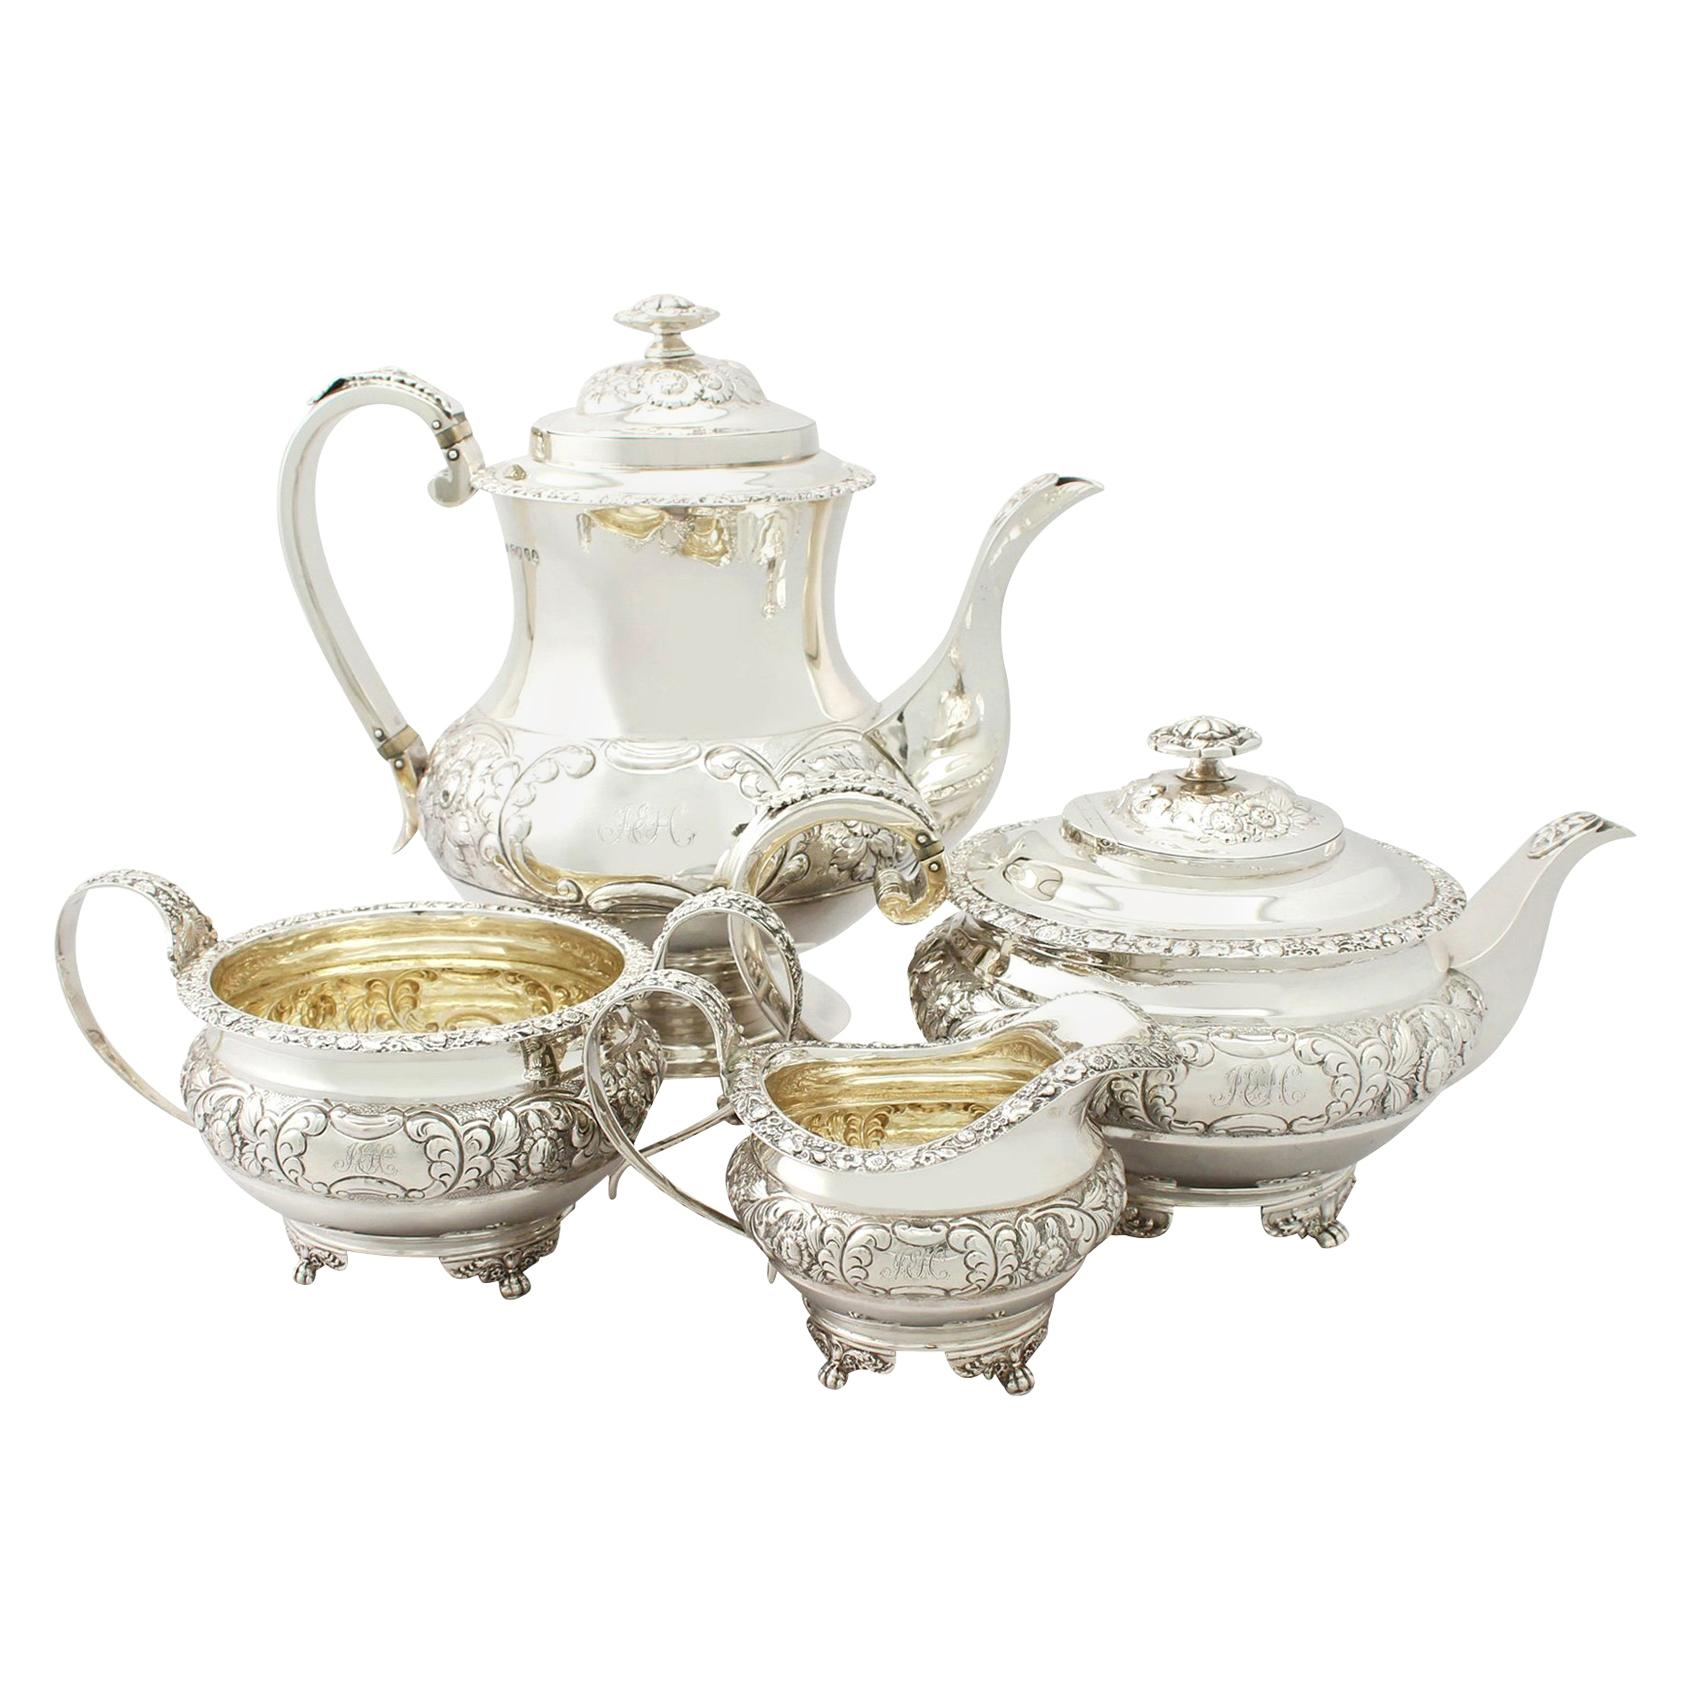 Antique Regency Style Sterling Silver Four-Piece Tea and Coffee Service